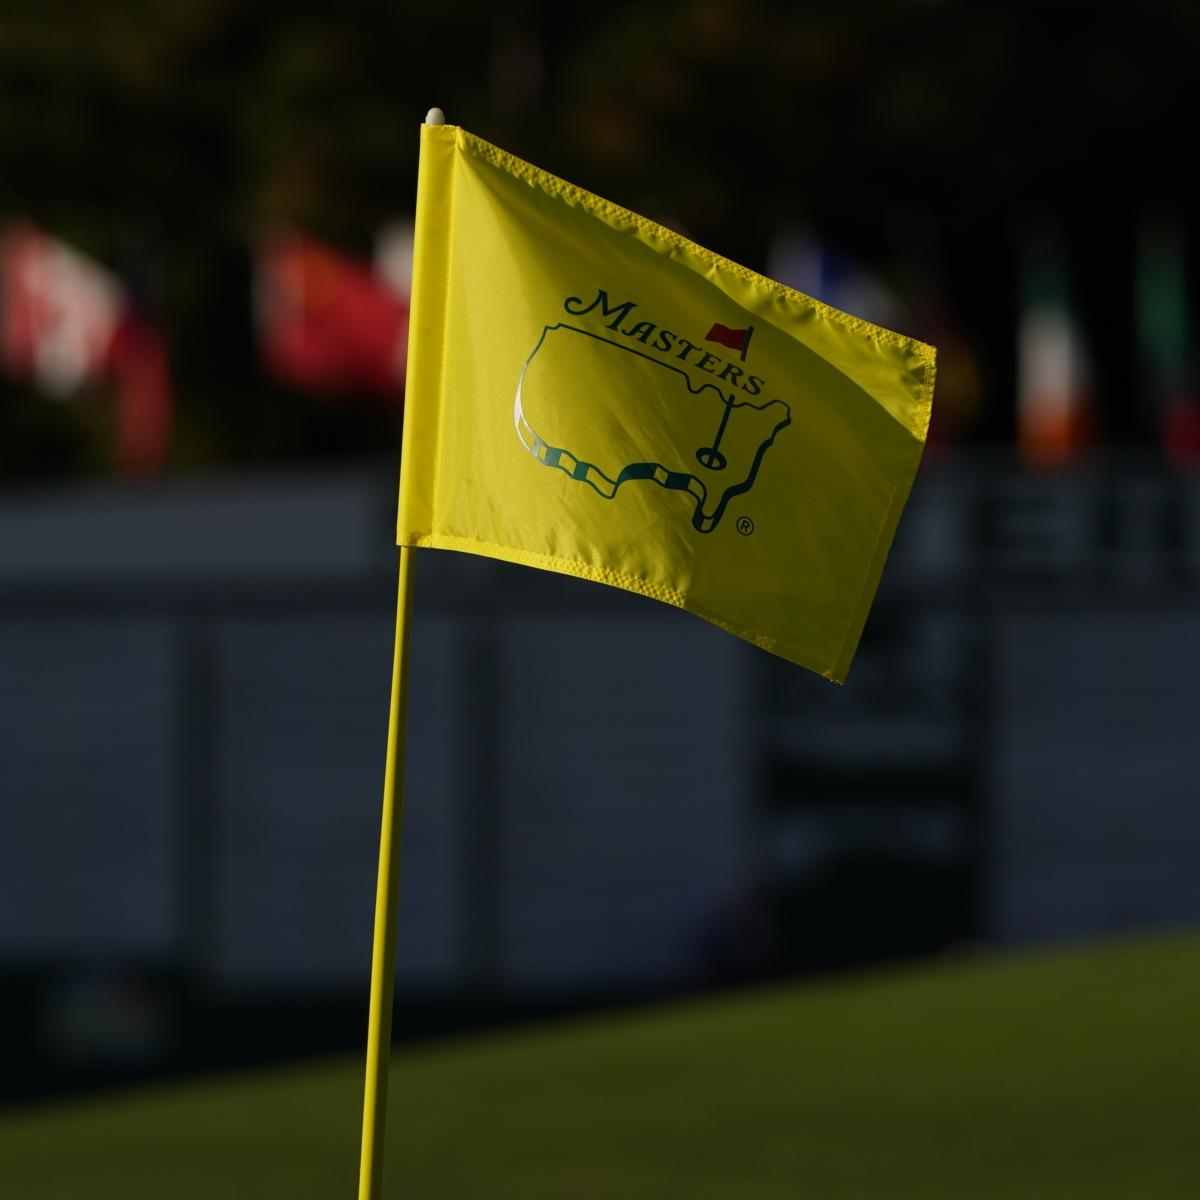 The Masters 2021: Complete Betting Guide for This Year's Tournament